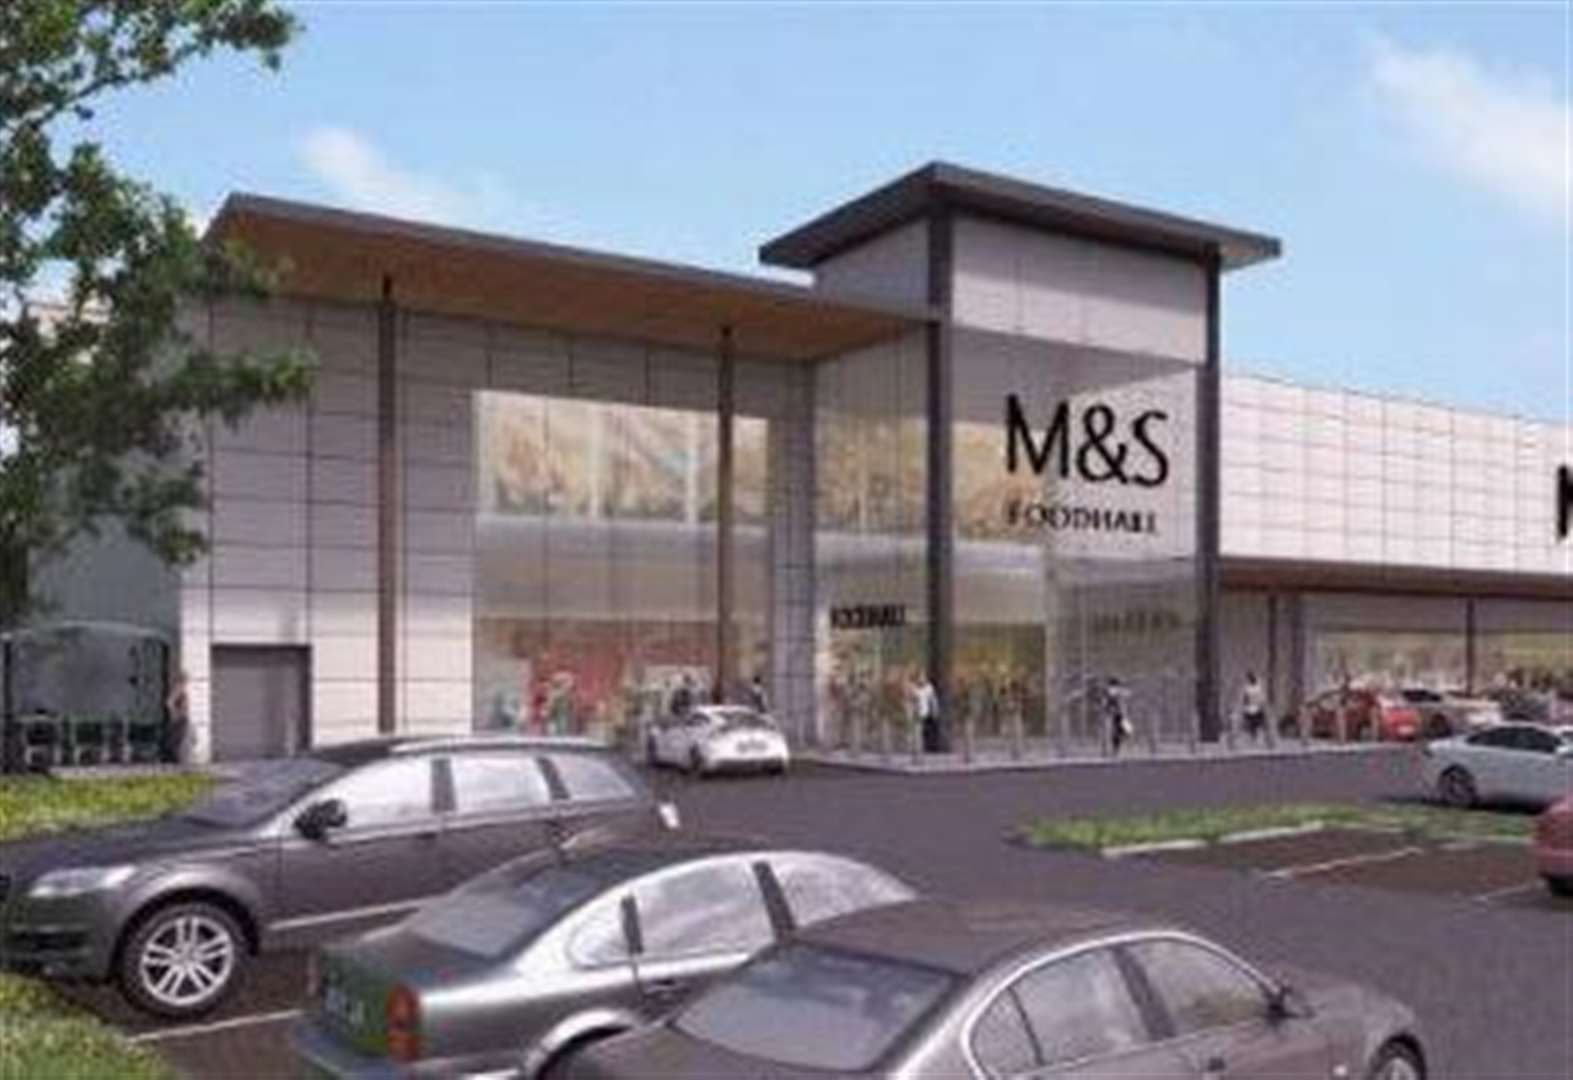 Giant M&S store gets the green light